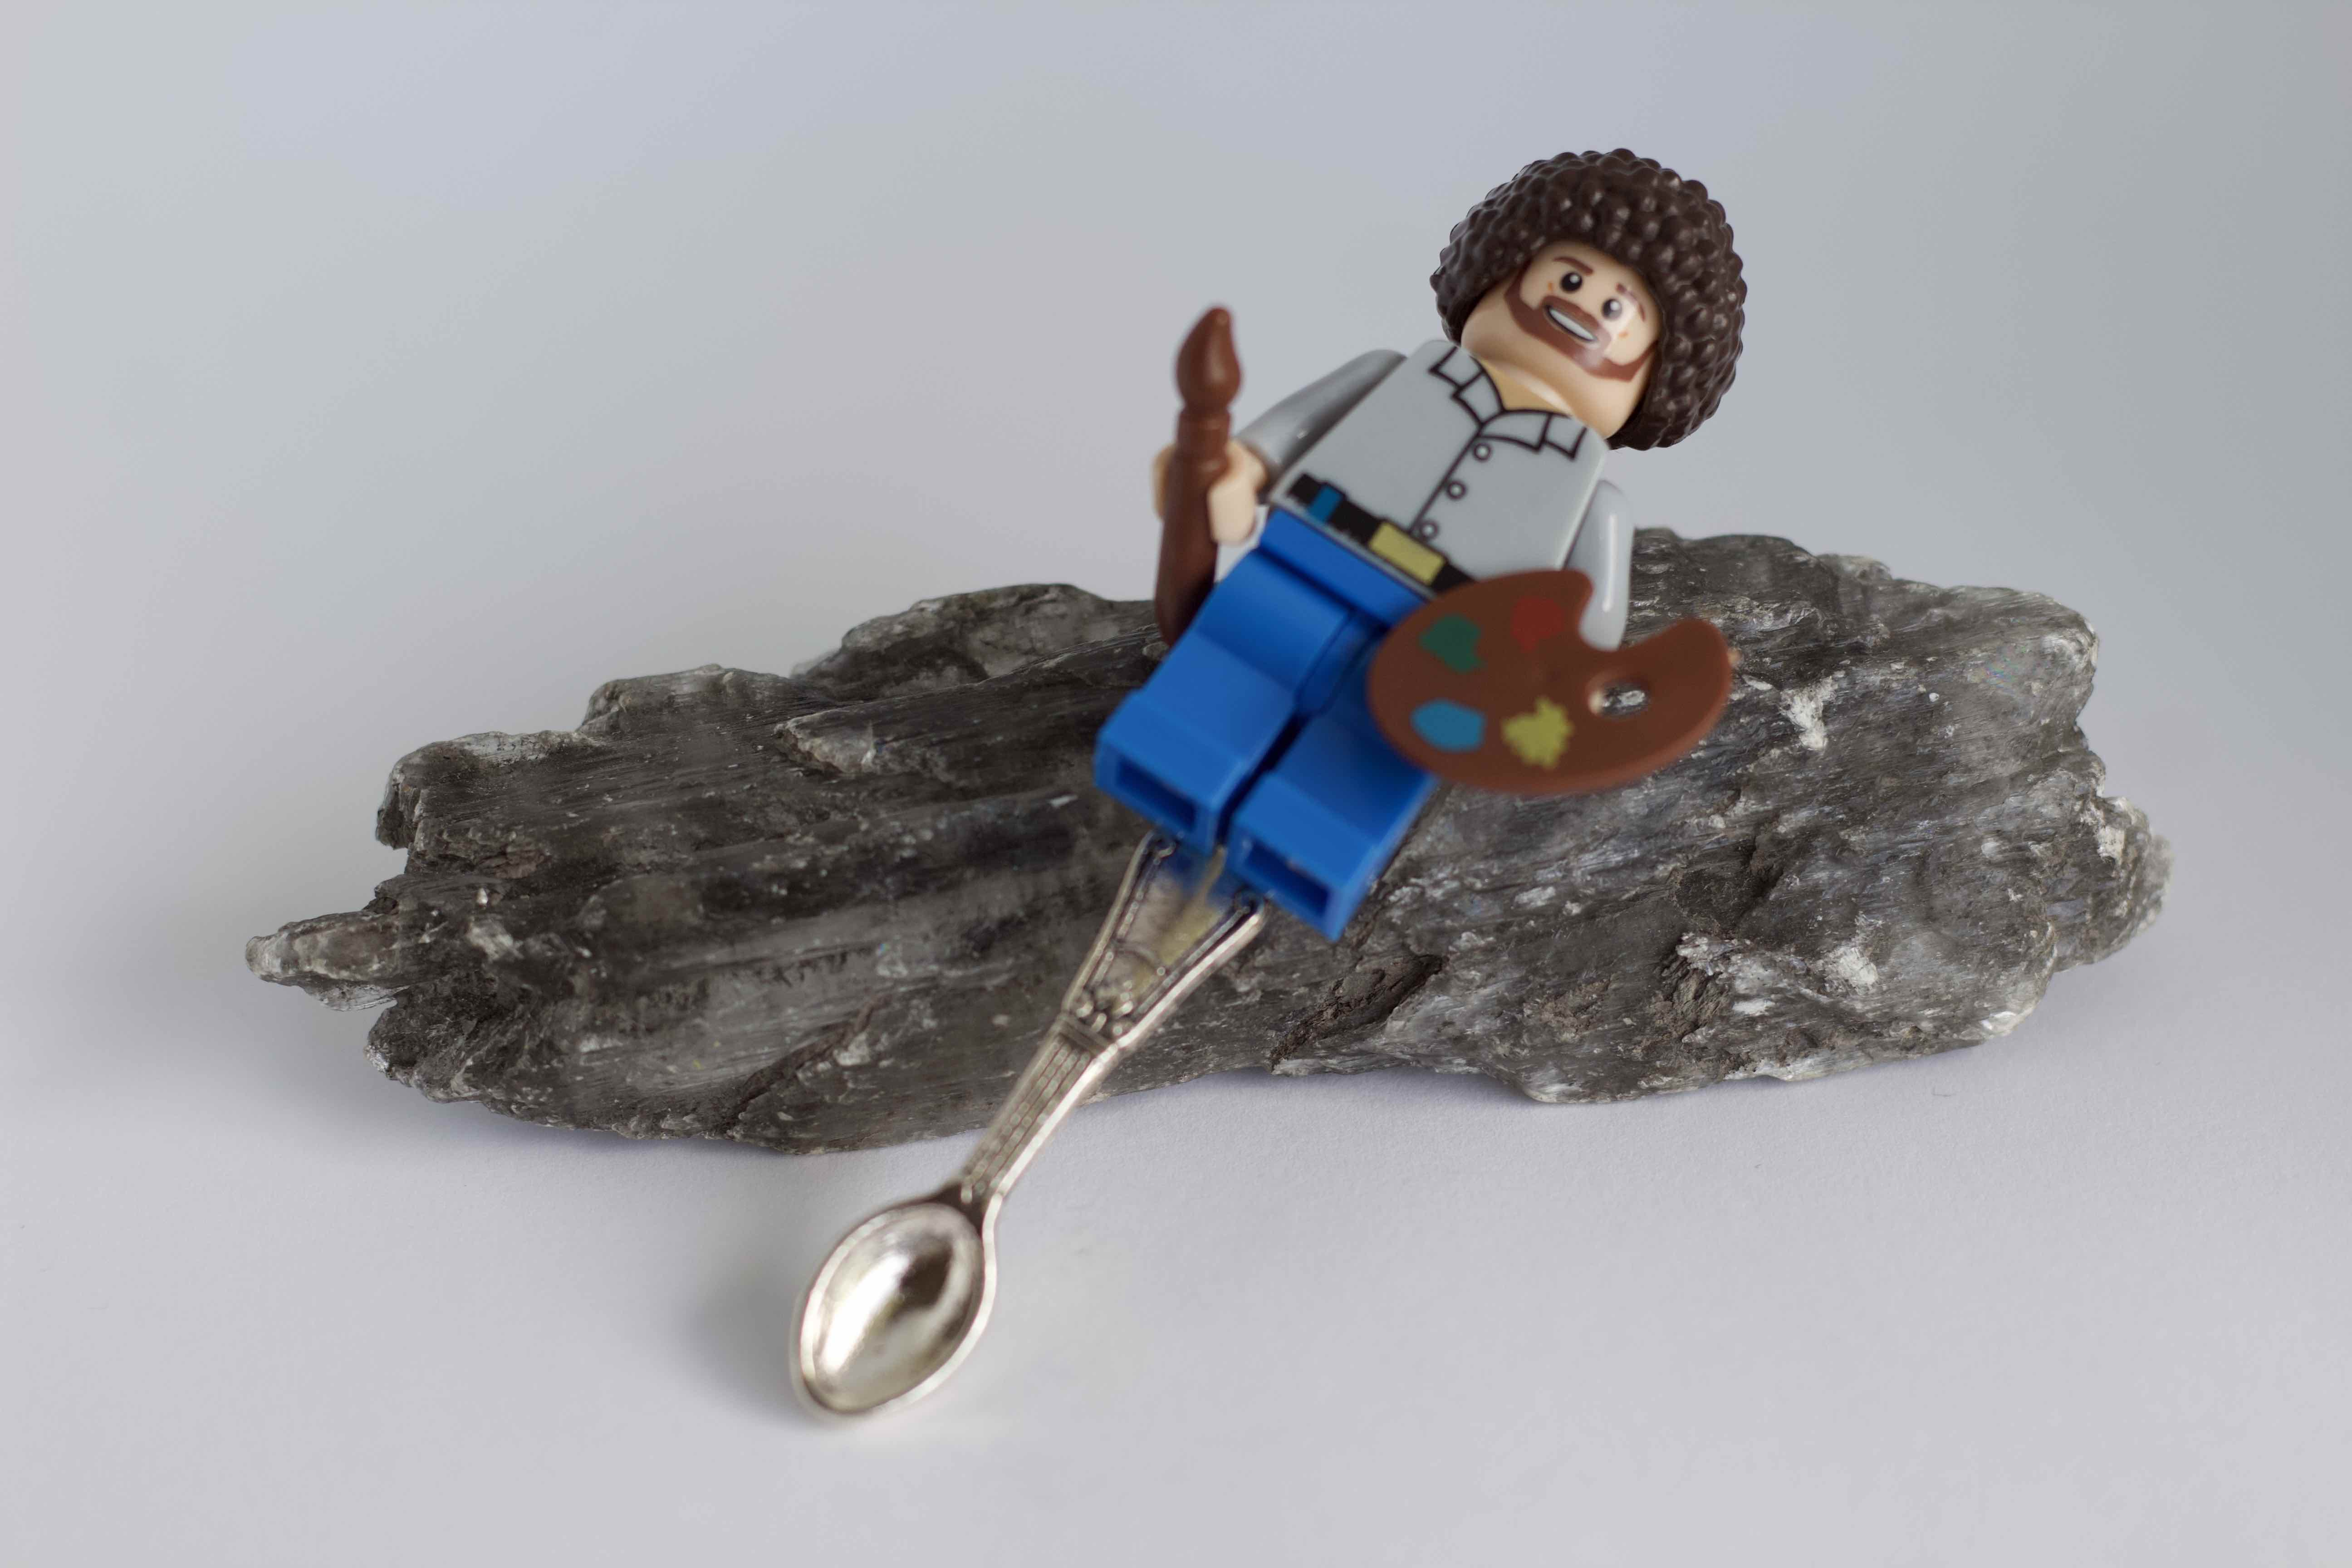 Bob Ross Lego Big Spoon